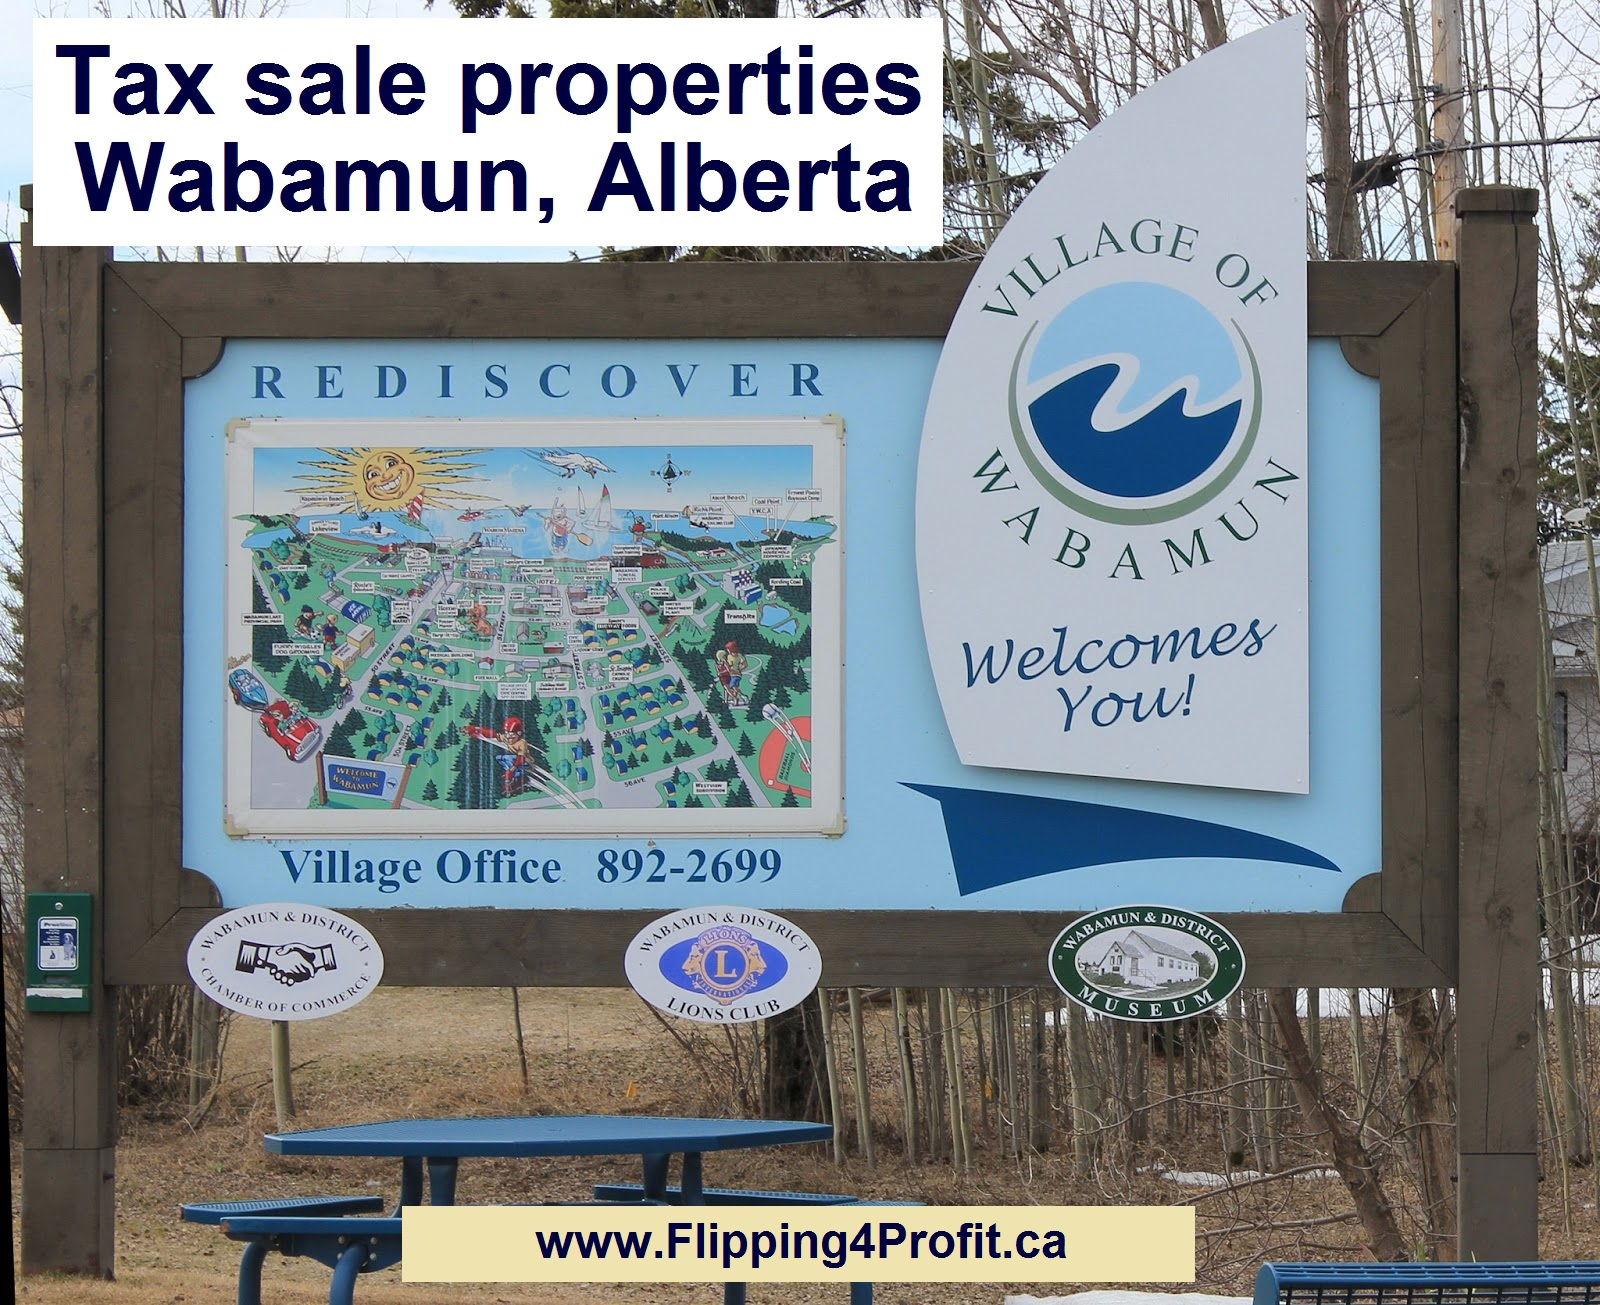 Tax sale properties Wabamun, Alberta